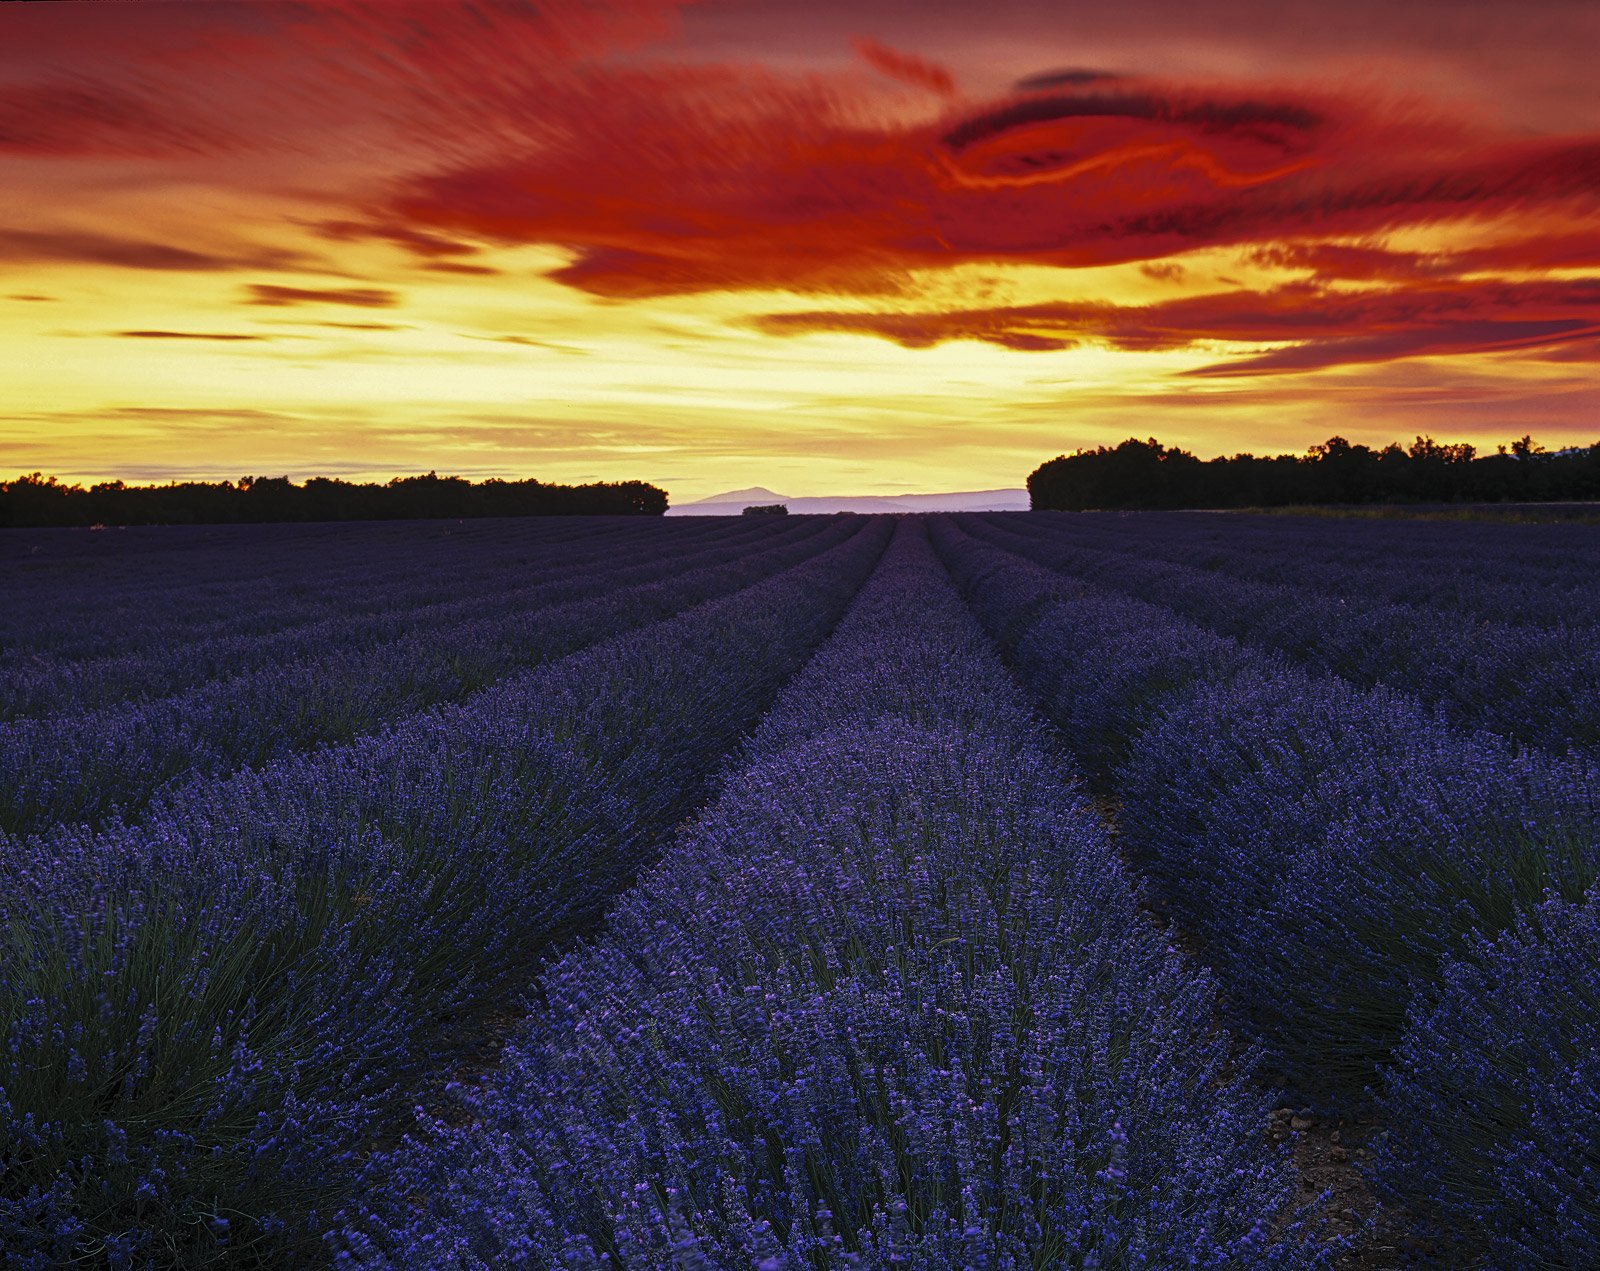 A glorious field of perfumed perfection in the form of ripened lavender became infinitely more photogenic beneath one of the...